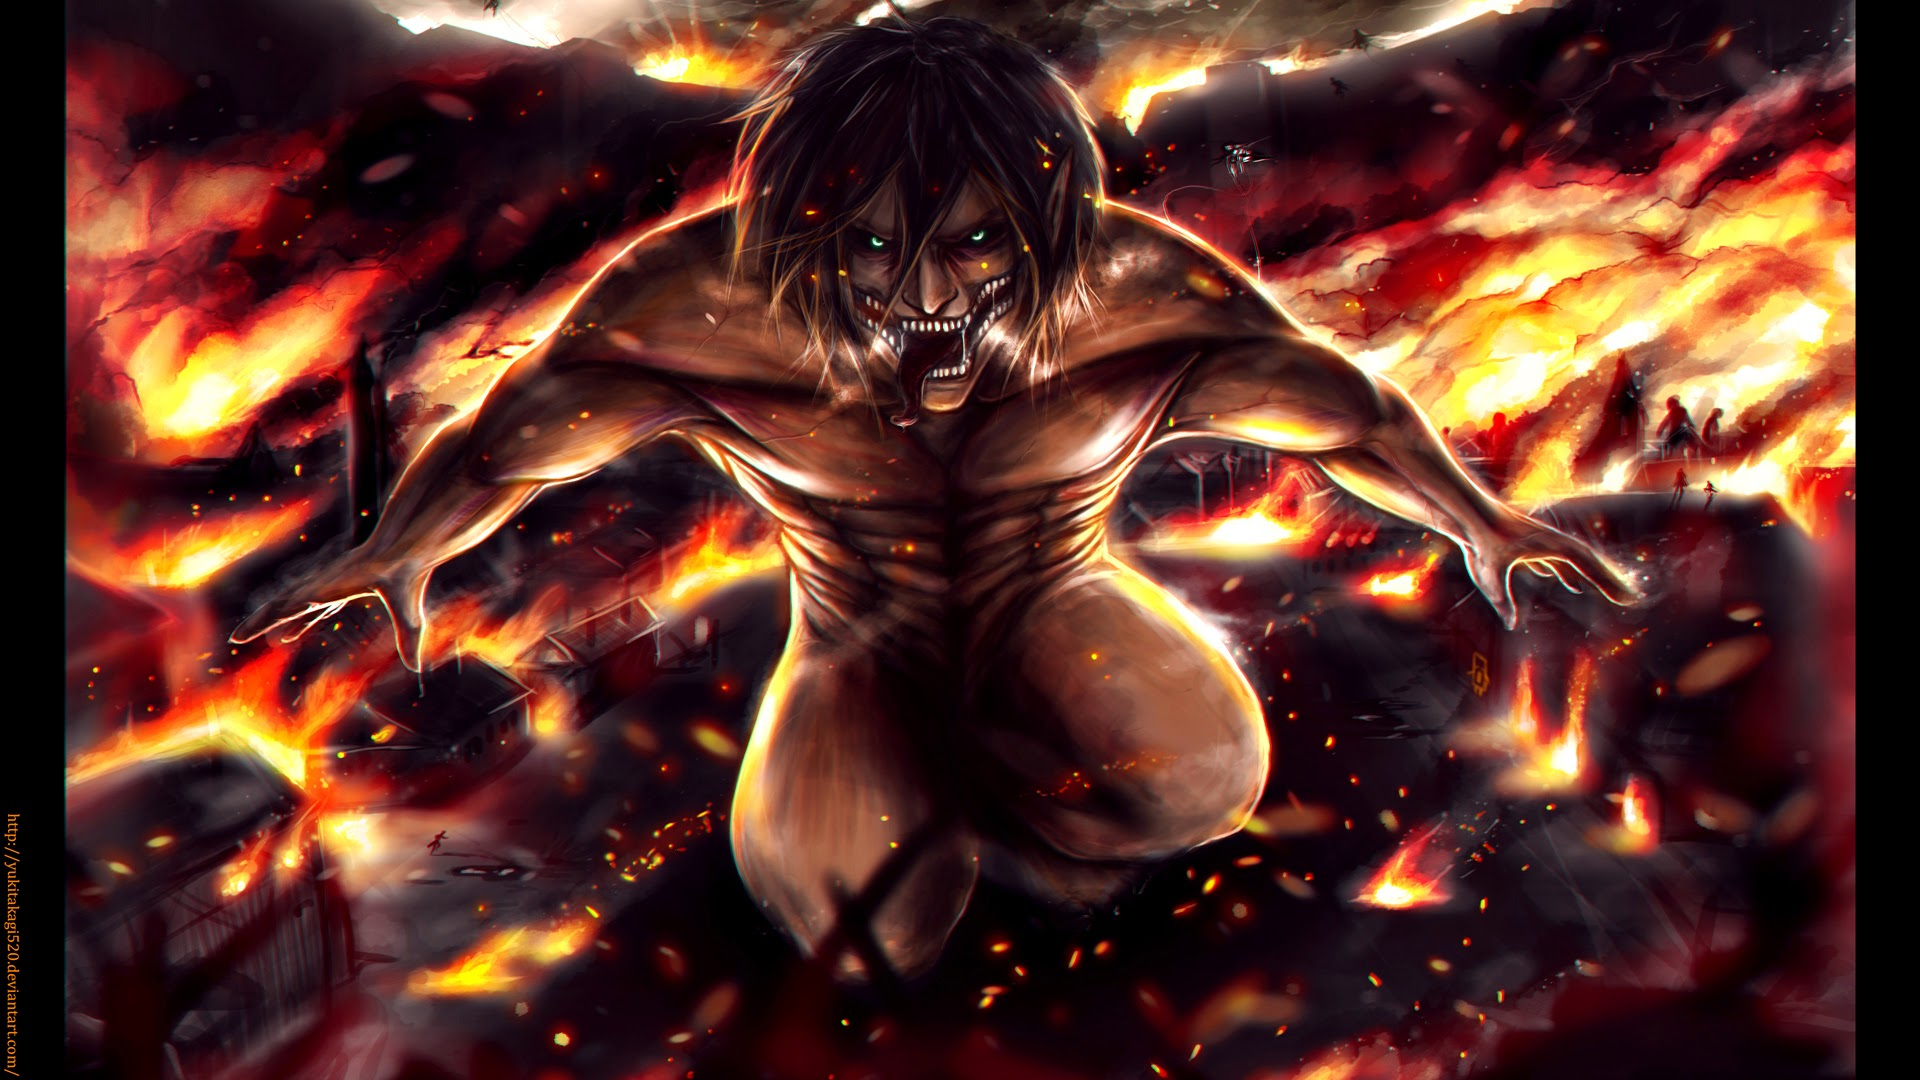 attack on titan eren 13 desktop background animewpcom